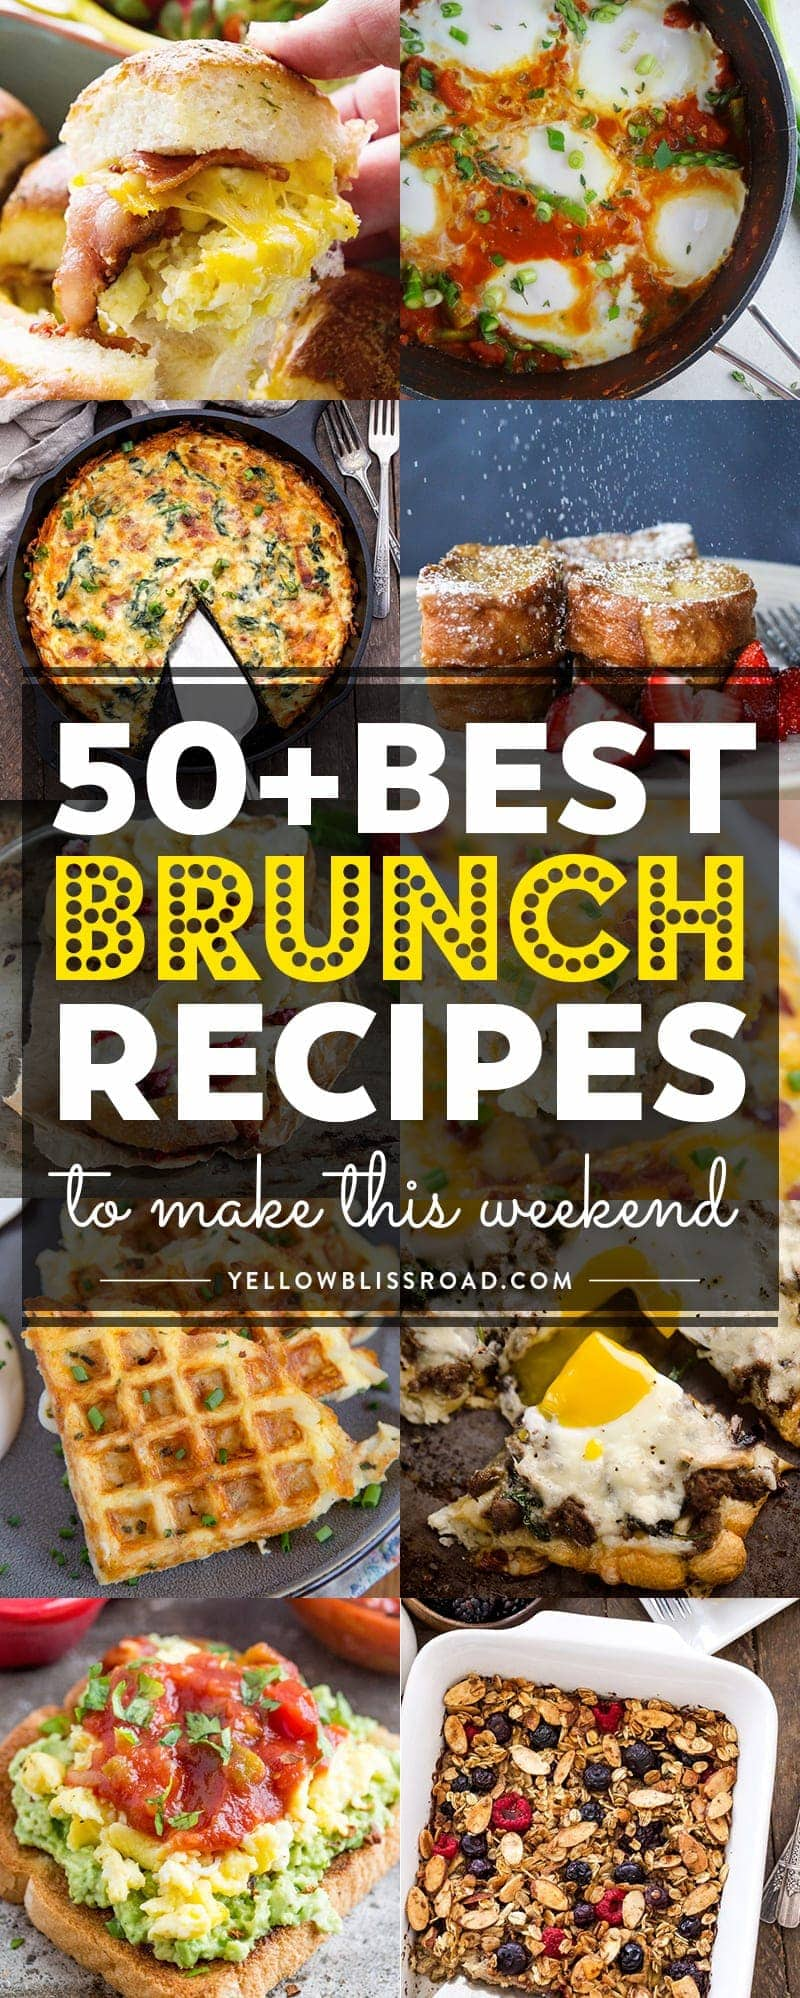 Remarkable 50 Of The Best Brunch Recipes To Make This Weekend Interior Design Ideas Gresisoteloinfo